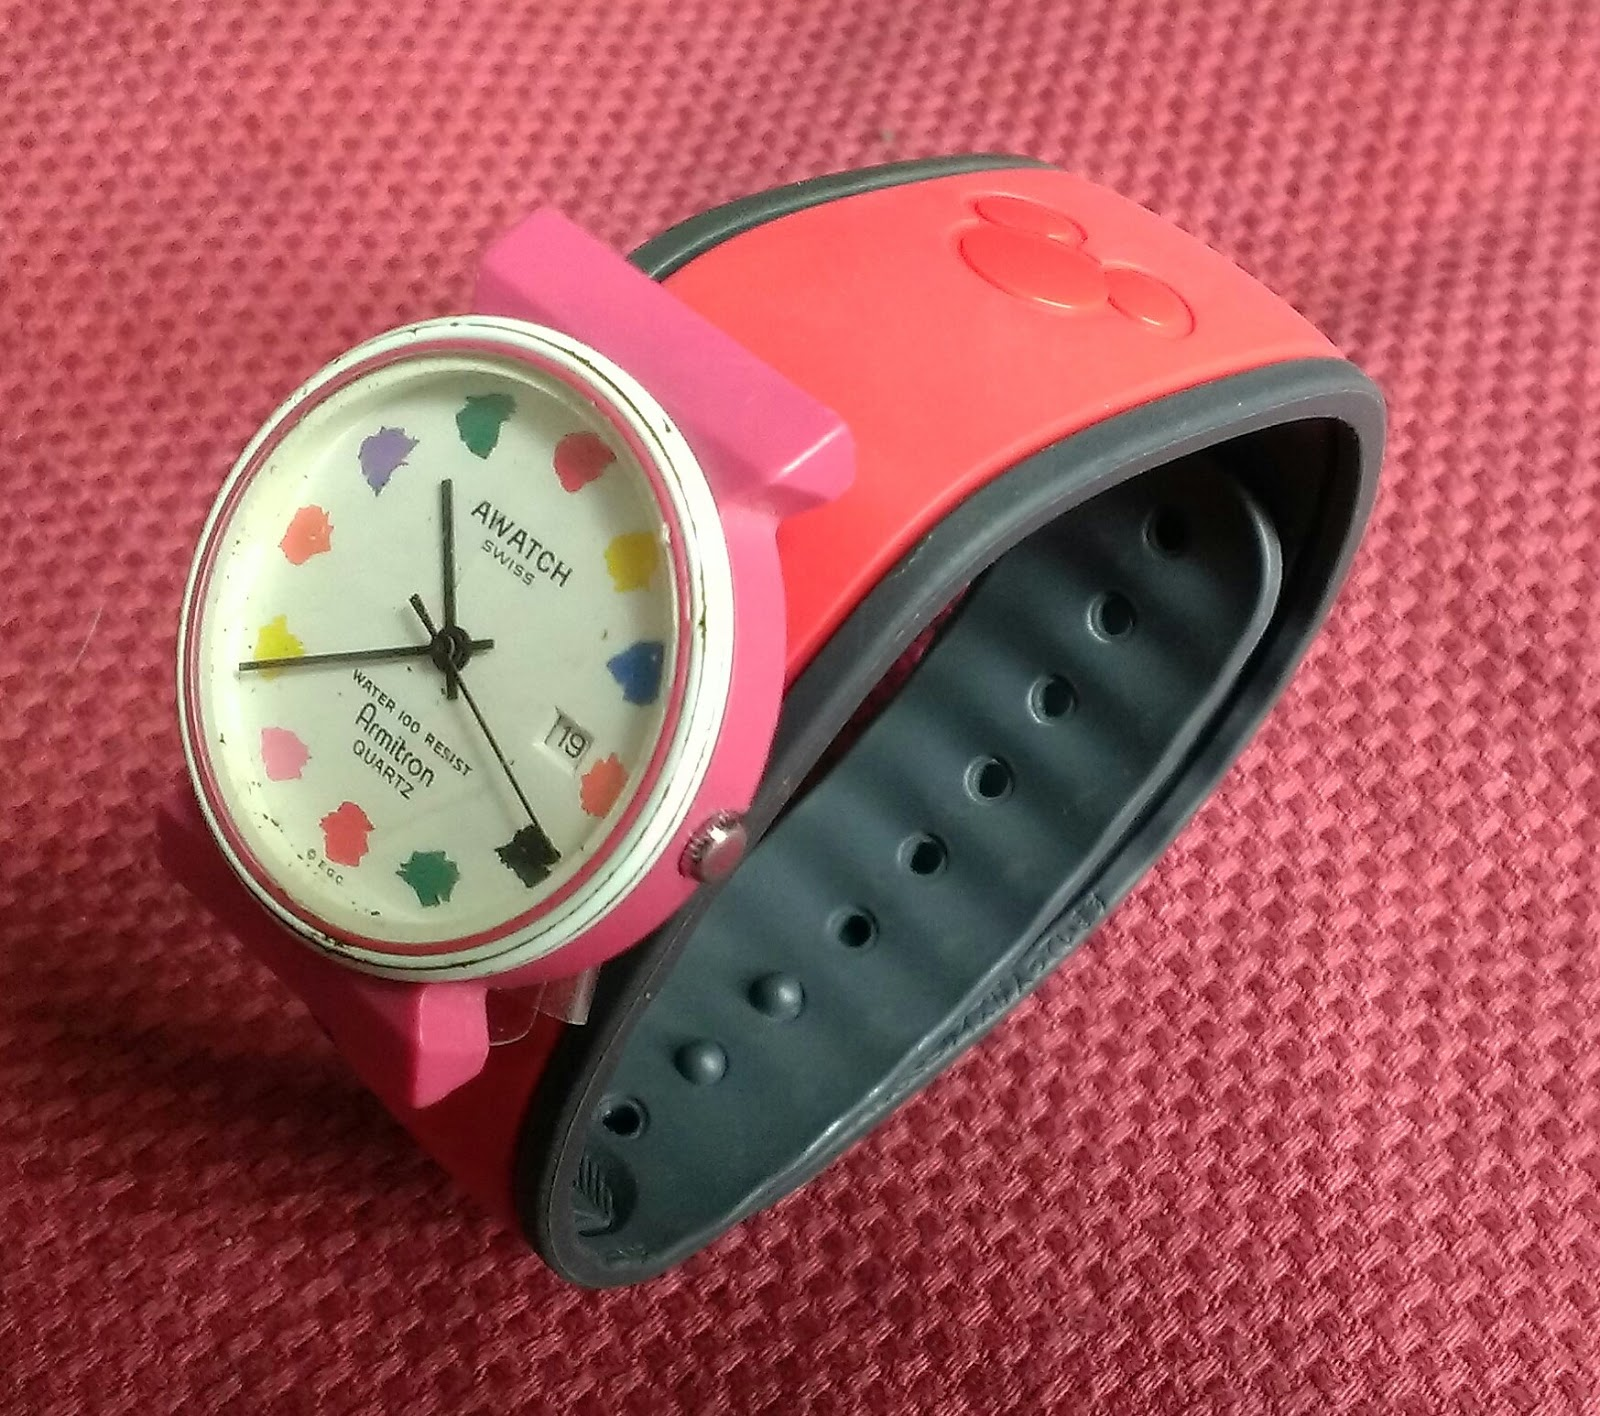 red disney magic band with a watch attached